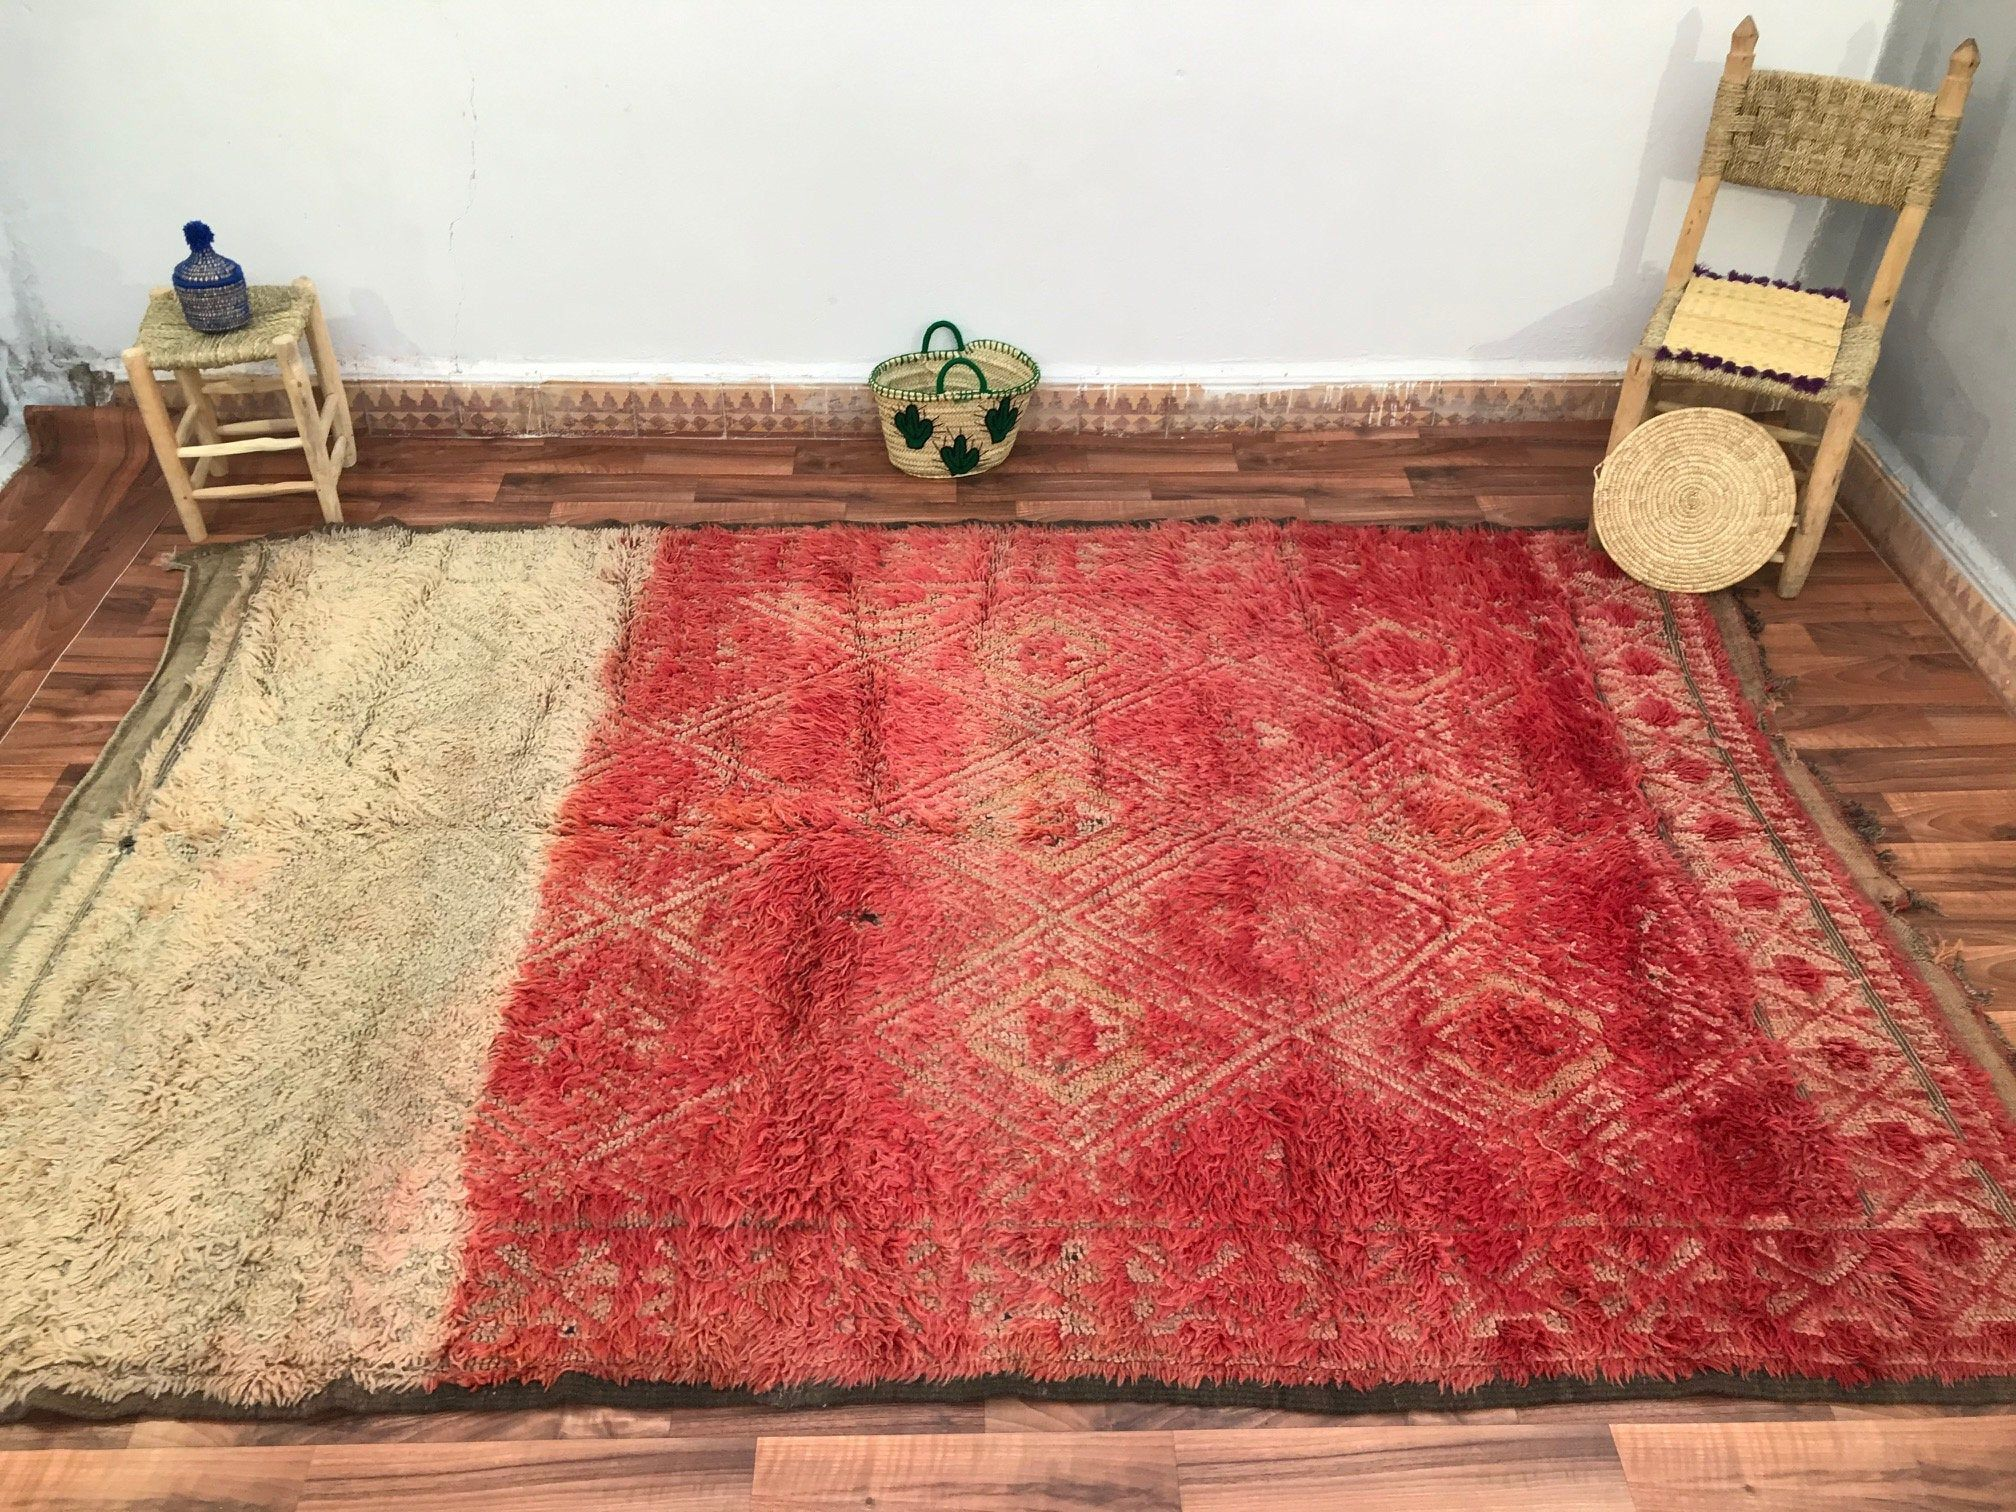 Wonderful Moroccan Berber Handmade Artizanal 6 56ft10ft Etsy In 2020 Boho Rug Durable Carpet Authentic Rugs